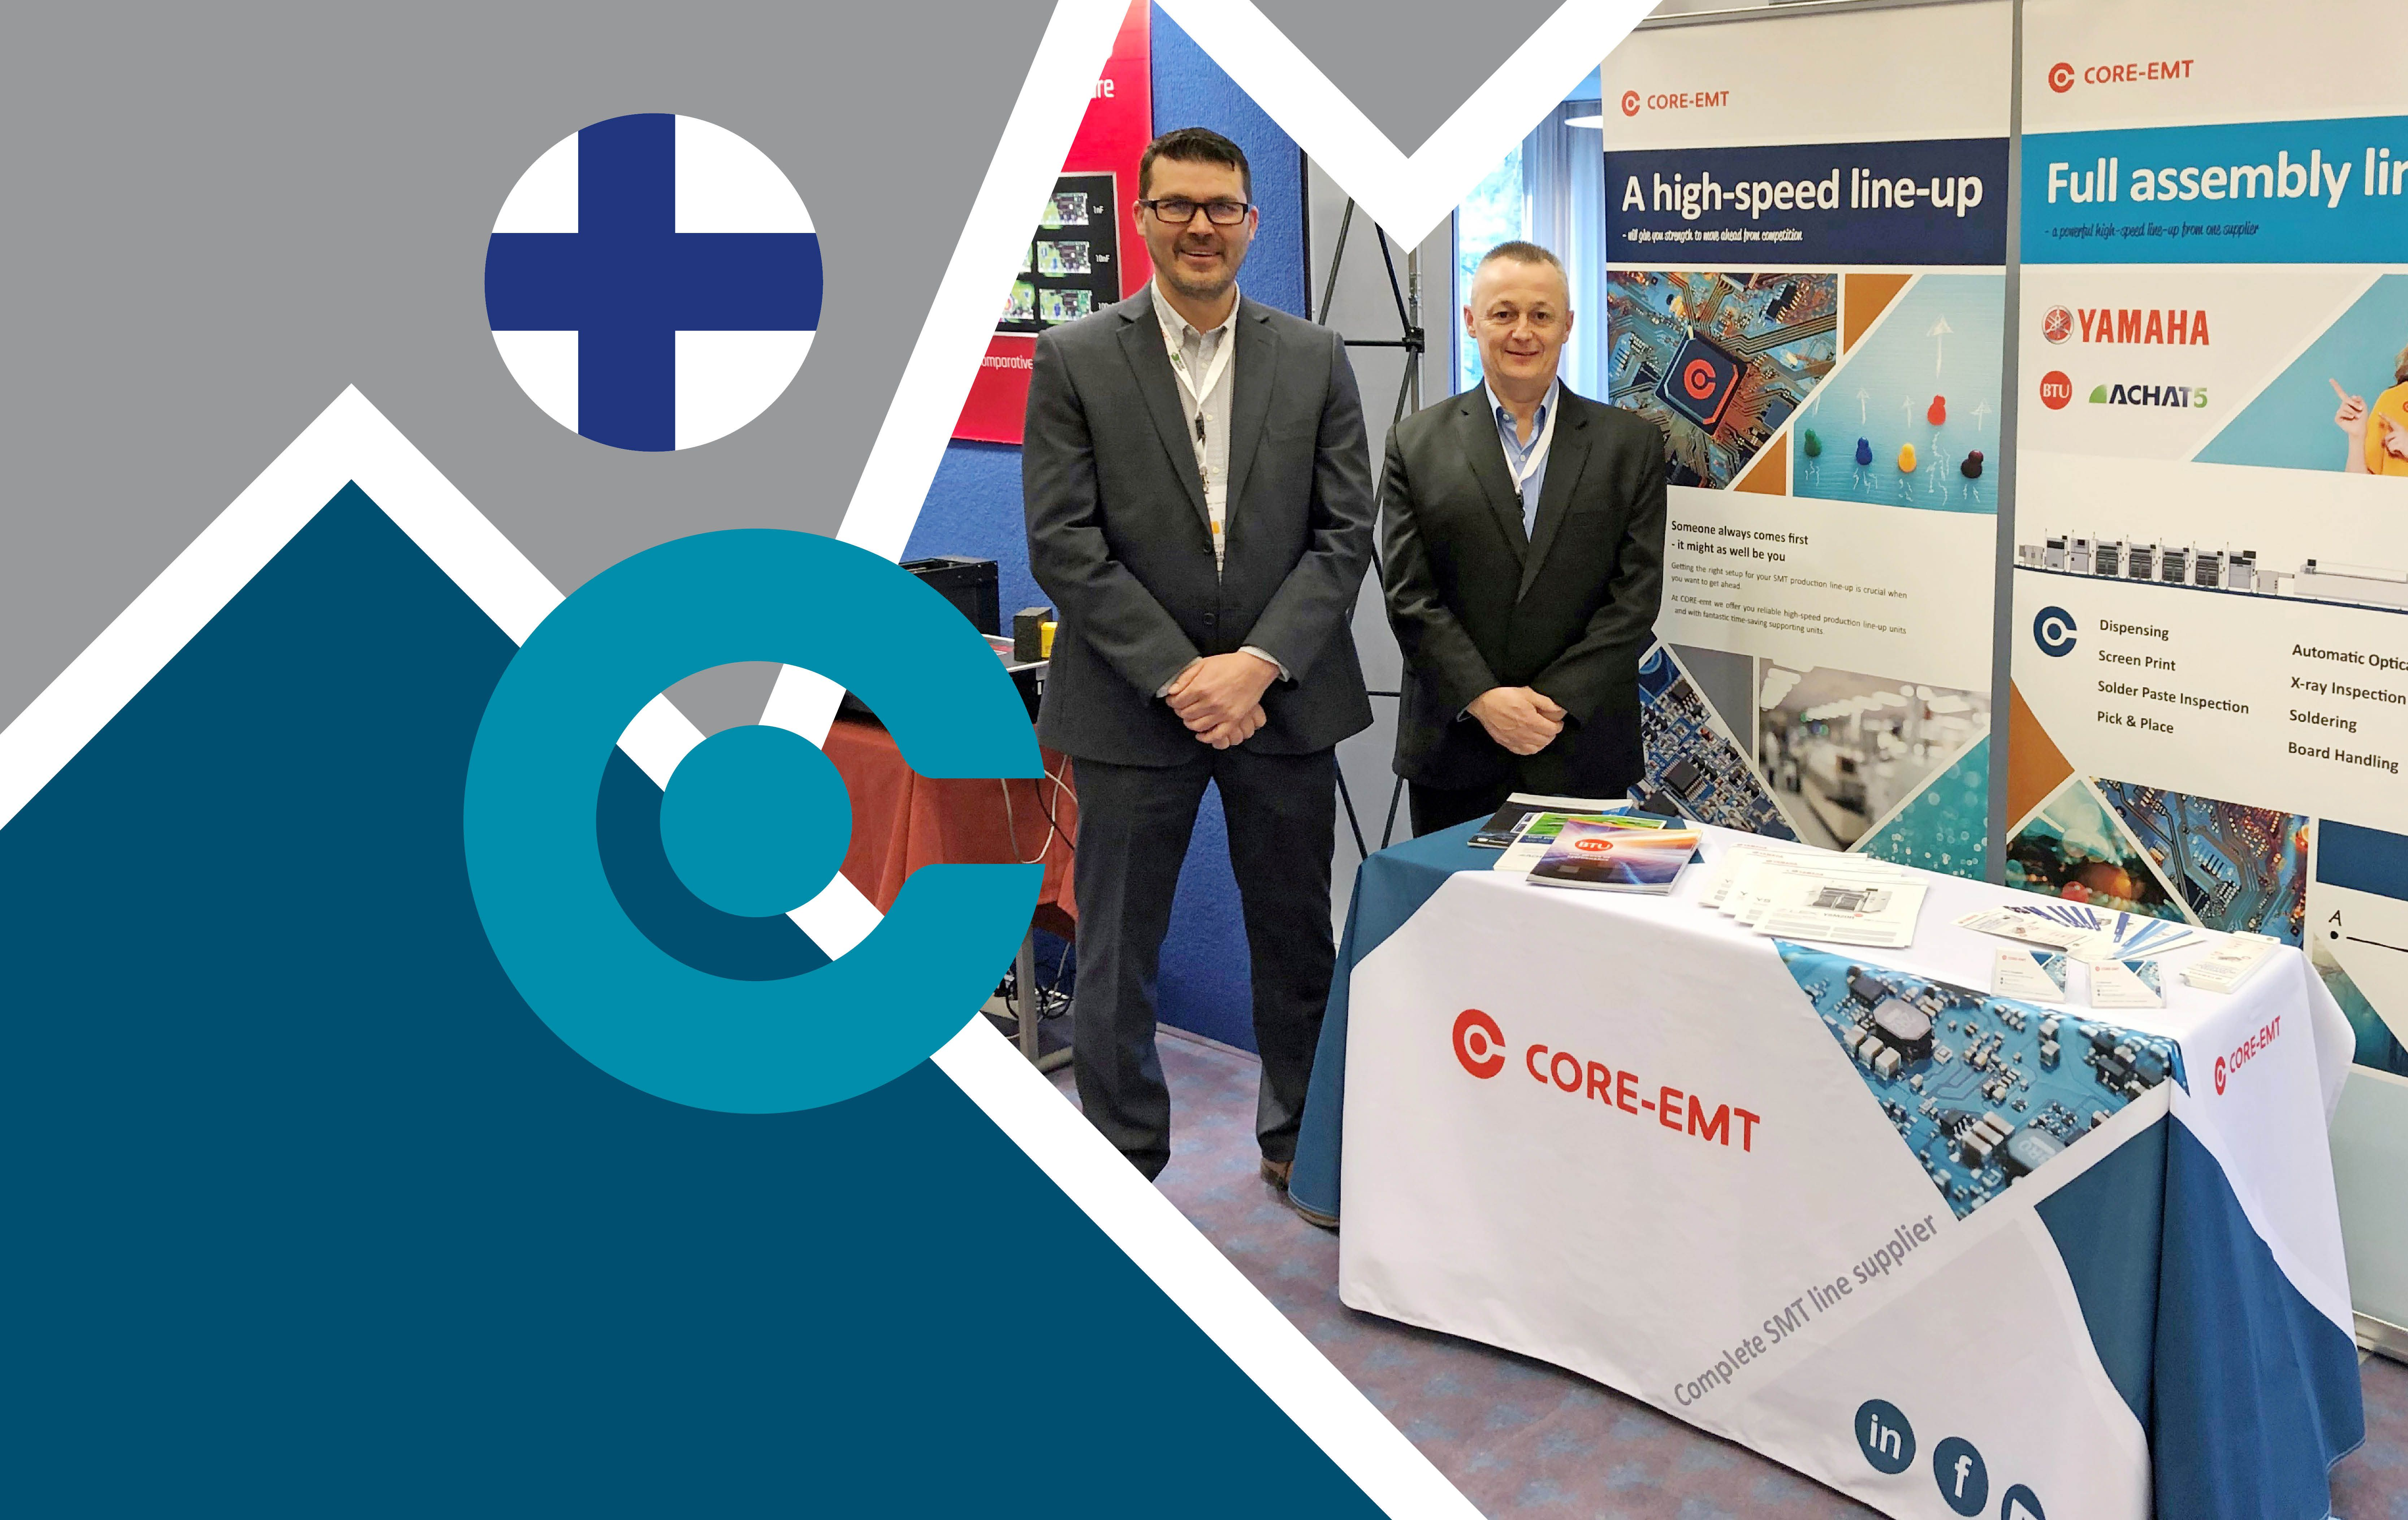 Meet Kai and Steen at the Finnish evertiq expo in Tampere